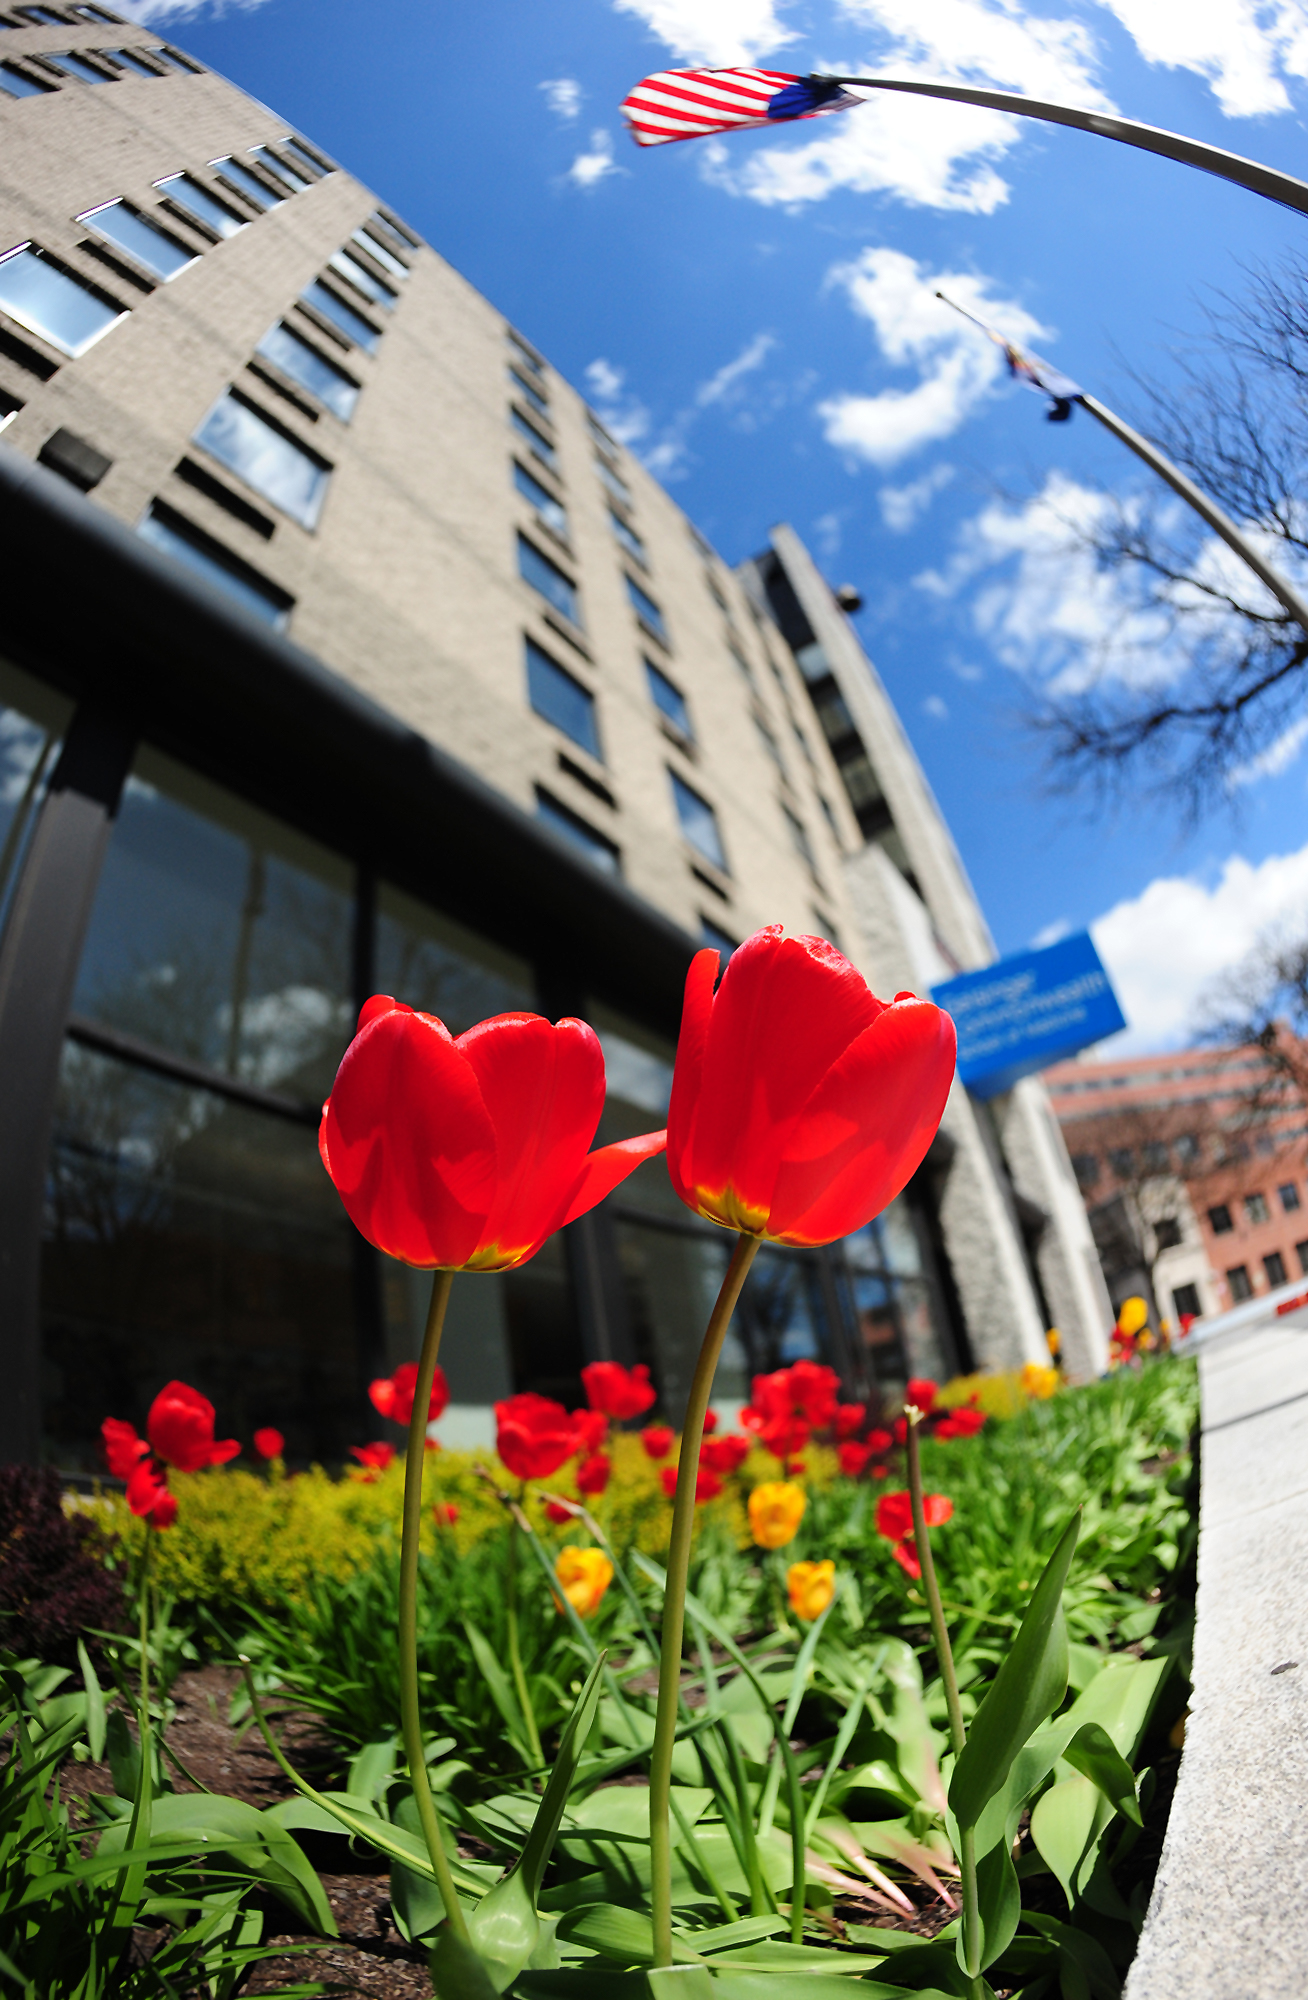 Tulips in bloom on Public Square in Wilkes-Barre, Pa on Earth Day, April 22, 2020.